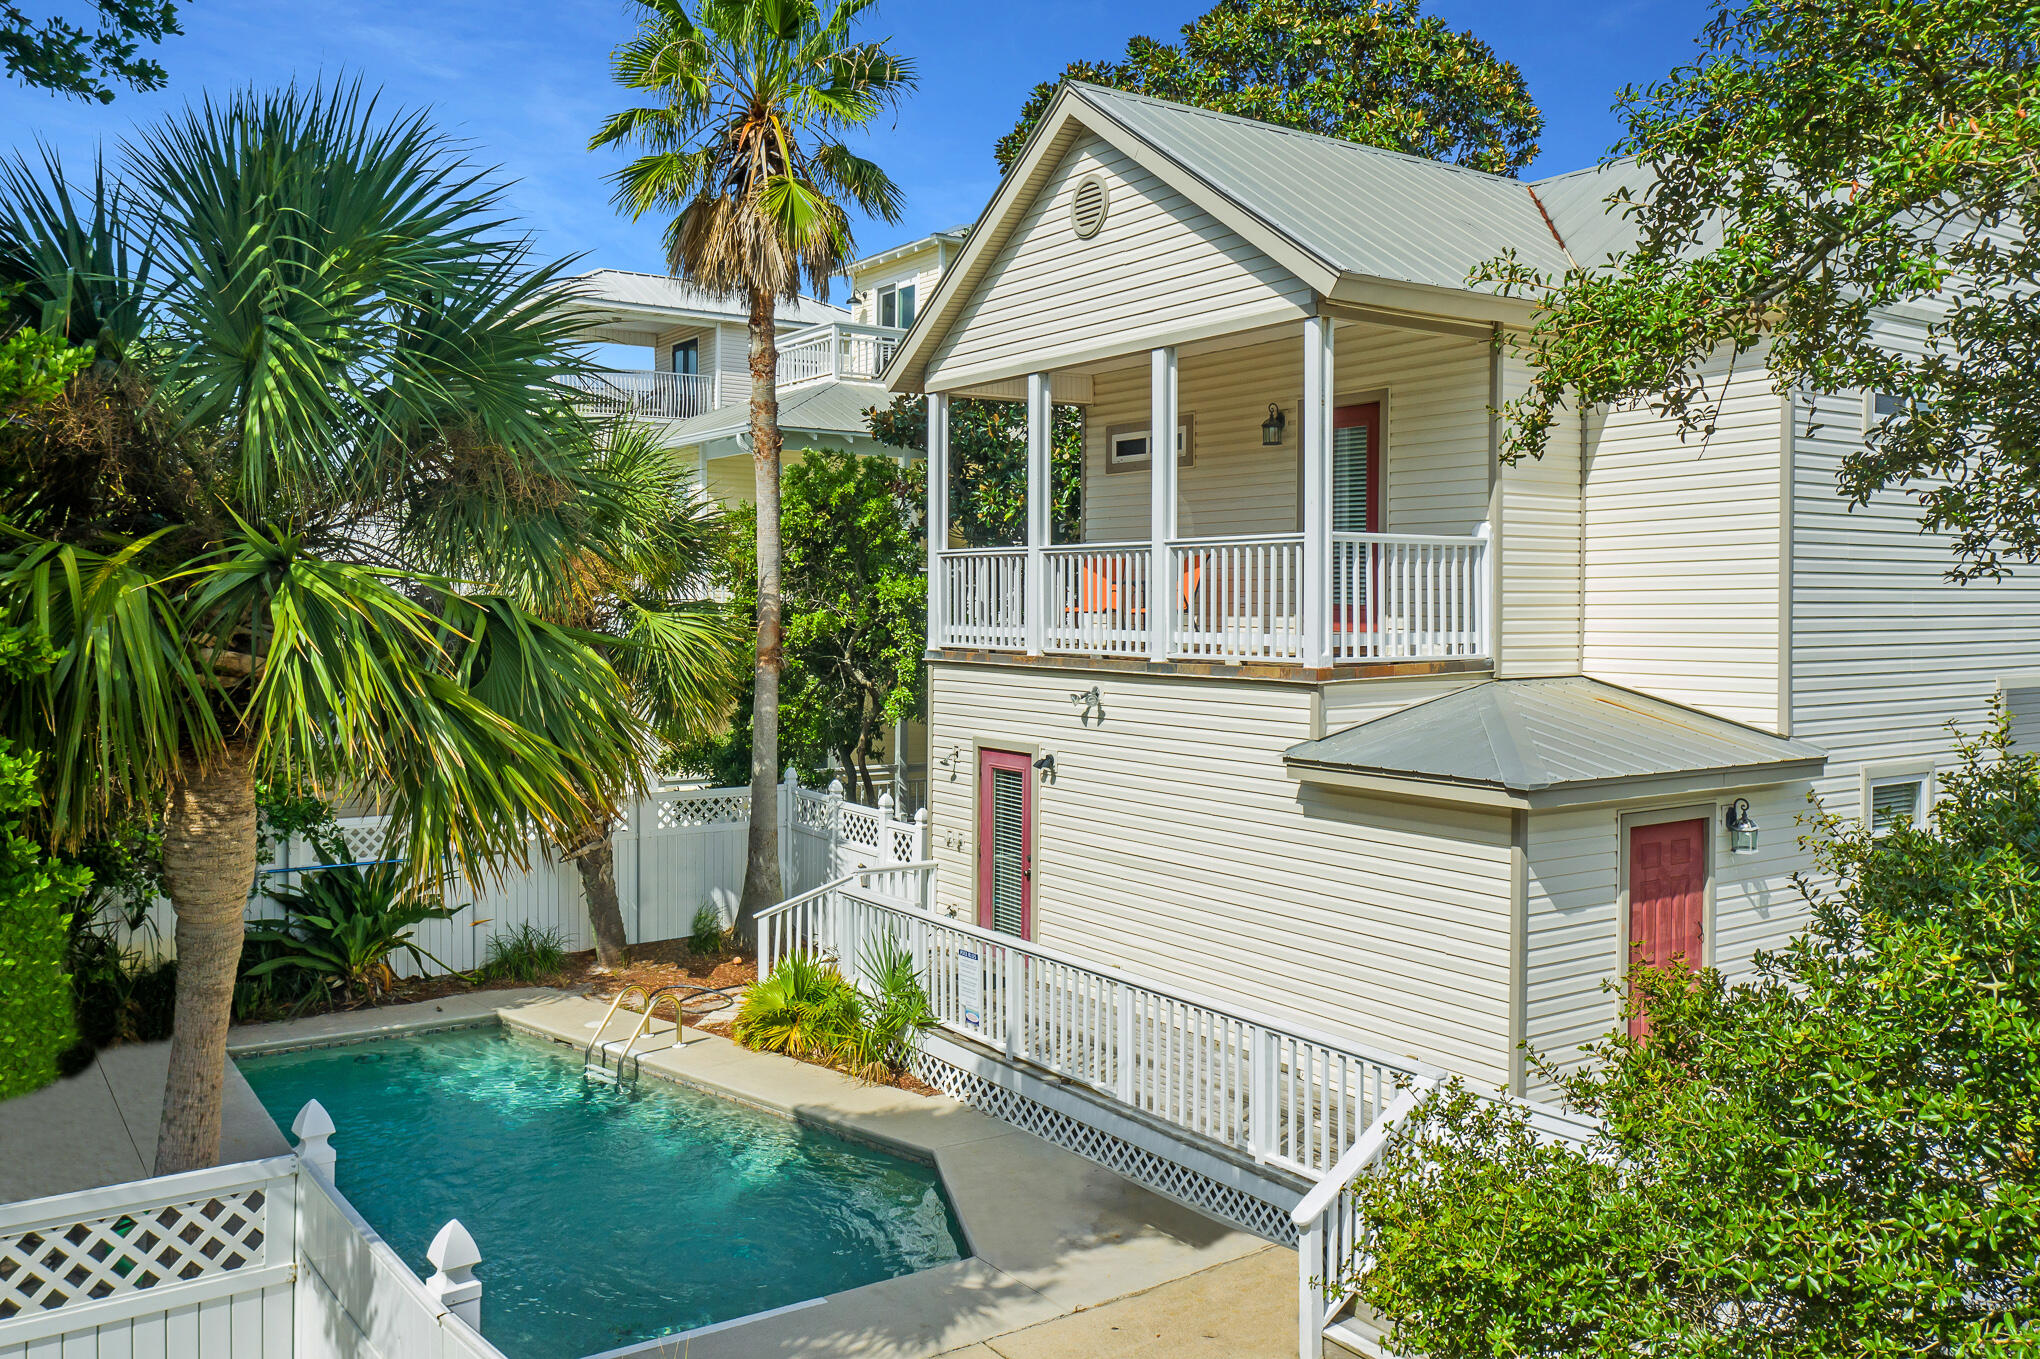 This three-bed, three-bath Crystal Beach home is in the heart of Destin and only a four-minute walk from the front door until your toes are in the sand. Featuring nearly 1,700 square feet of living space, this rental powerhouse sleeps eight with a private pool and ample parking. A great income producer, it is currently grossing more than $80,000 in annual rental proceeds and already has rentals on the books into late spring 2022. Notable features of the home include a generous wraparound porch, a private balcony off of the owner's suite and a new HVAC unit installed in July 2021. A small refresh of the property includes new bedding, lamps and artwork throughout. Enjoy all of the shopping and dining Destin has to offer, some within walking distance, from this beloved beach retreat adjacent to the Henderson Beach Resort and Spa.